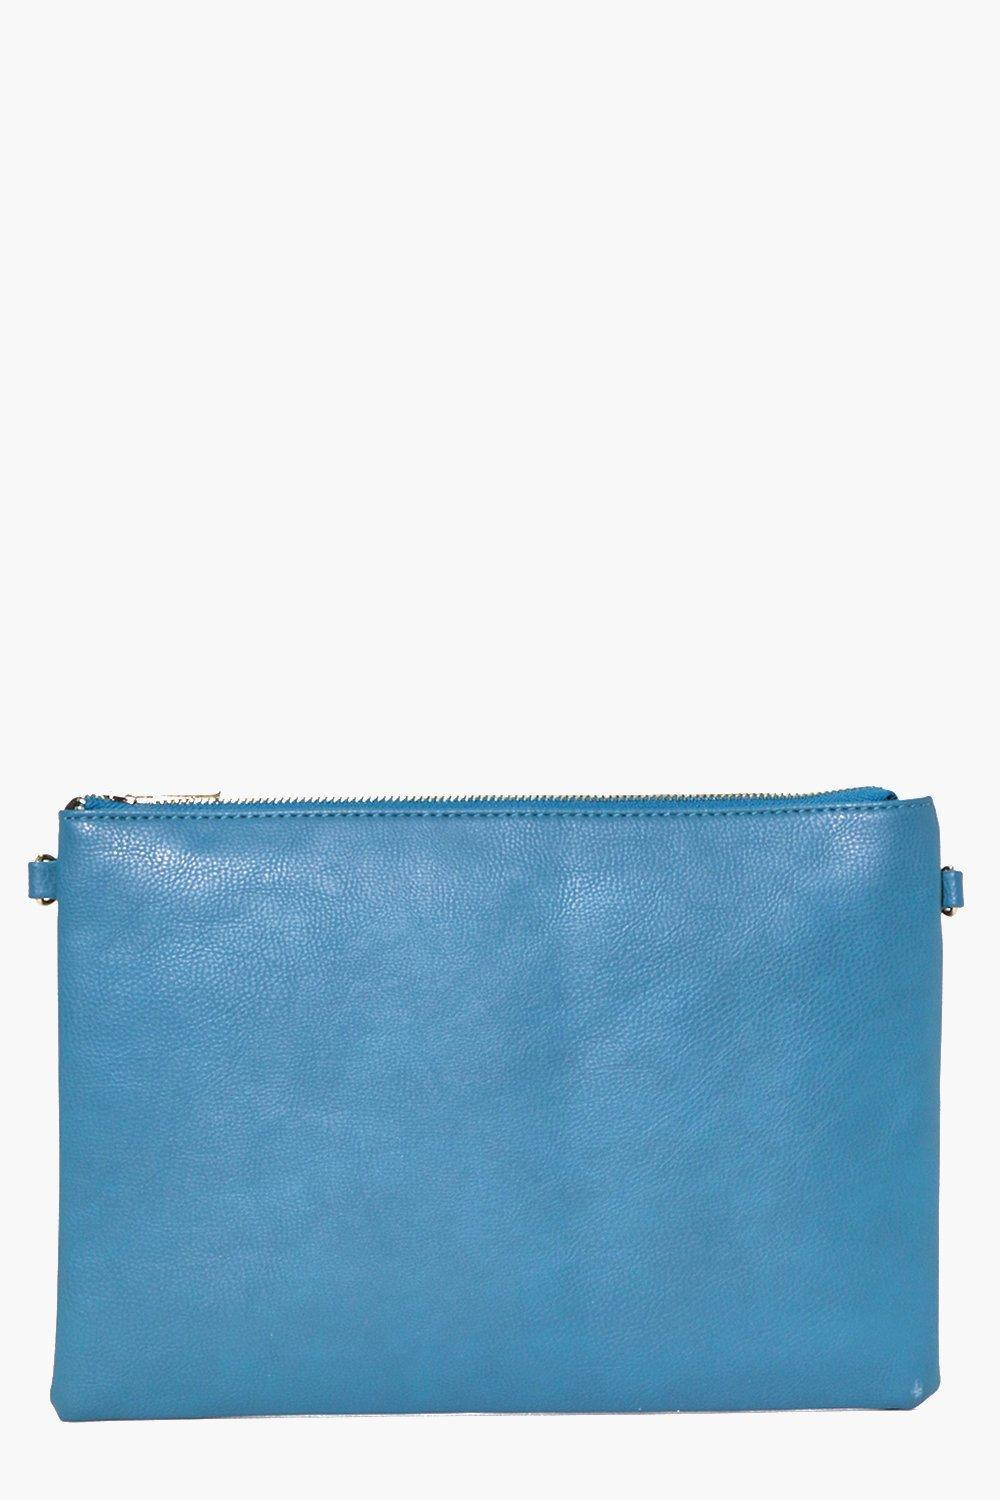 Zip Top Clutch Bag Indigo - predominant colour: denim; occasions: evening, occasion; type of pattern: standard; style: clutch; length: hand carry; size: standard; material: faux leather; pattern: plain; finish: plain; season: a/w 2016; wardrobe: event